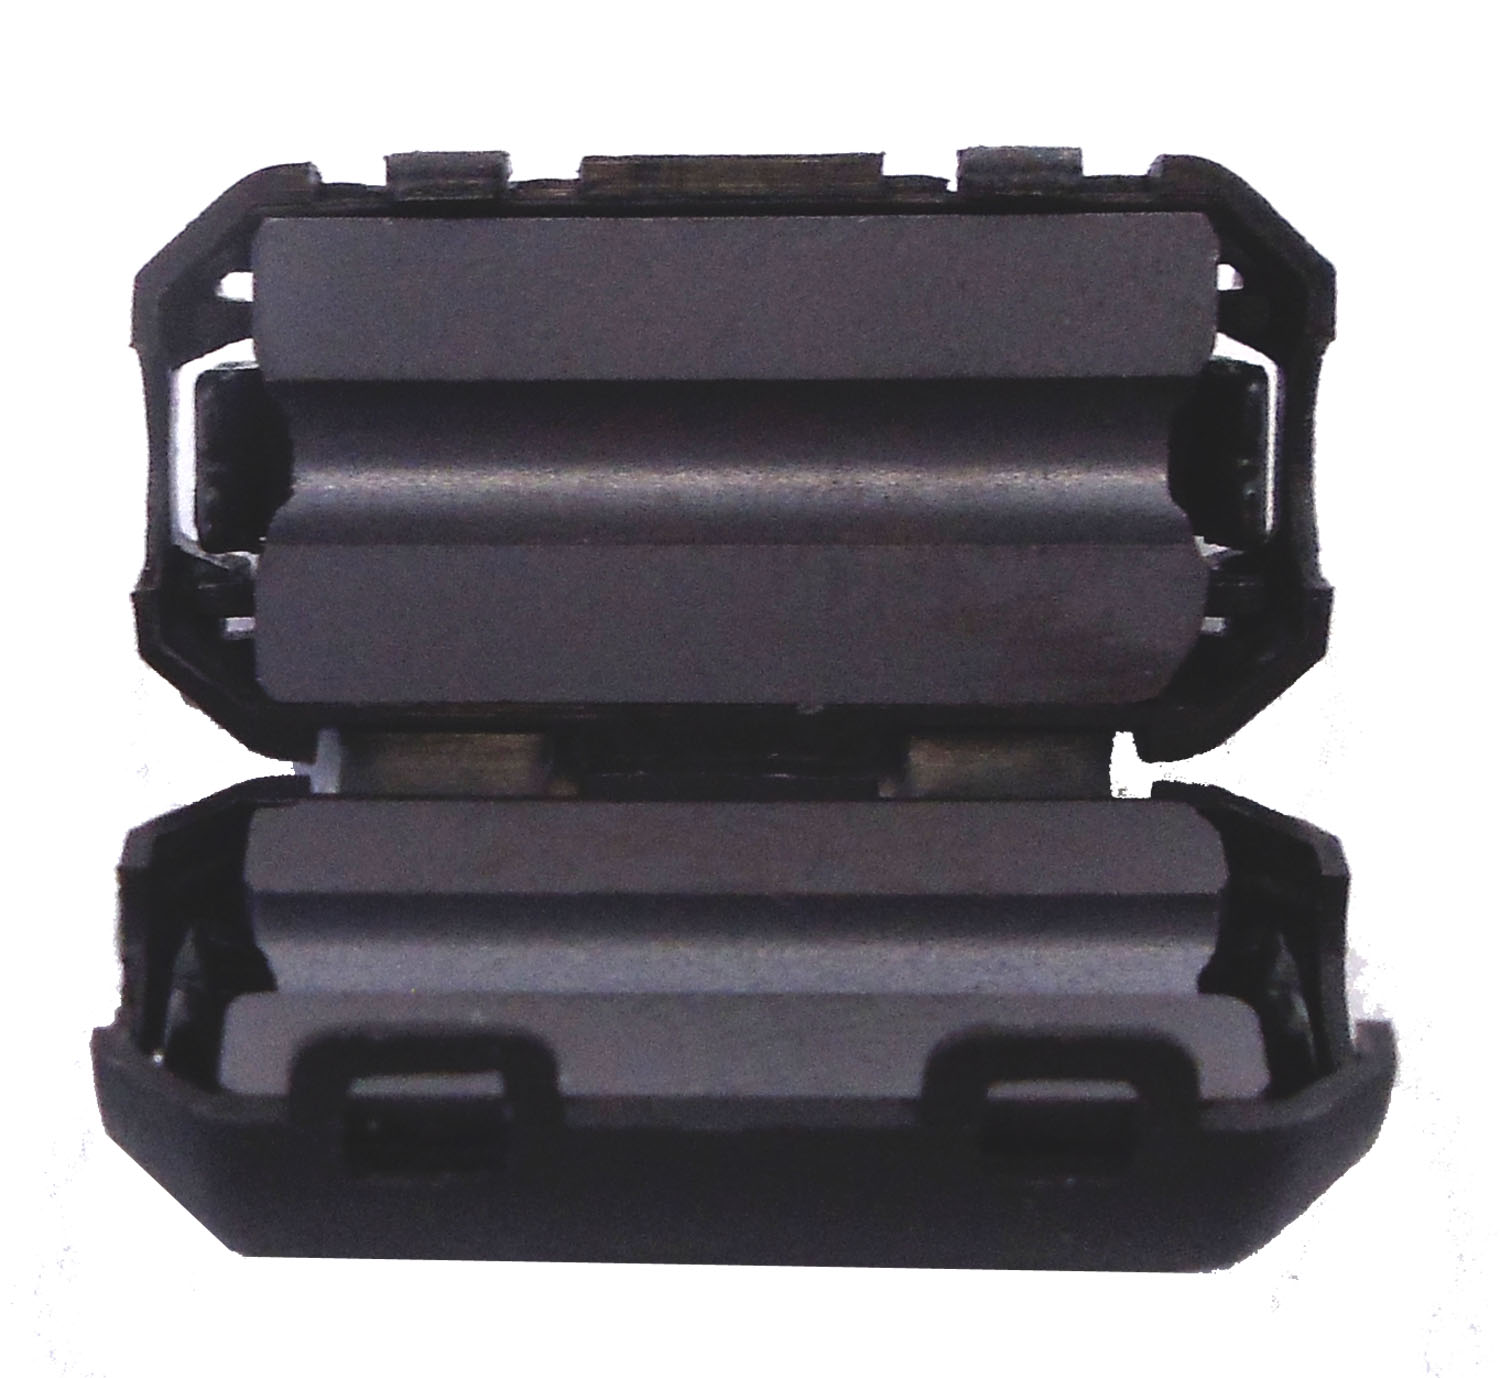 RFC3 - 4MM SNAP FERRITE CORE NOISE SUPPRESOR